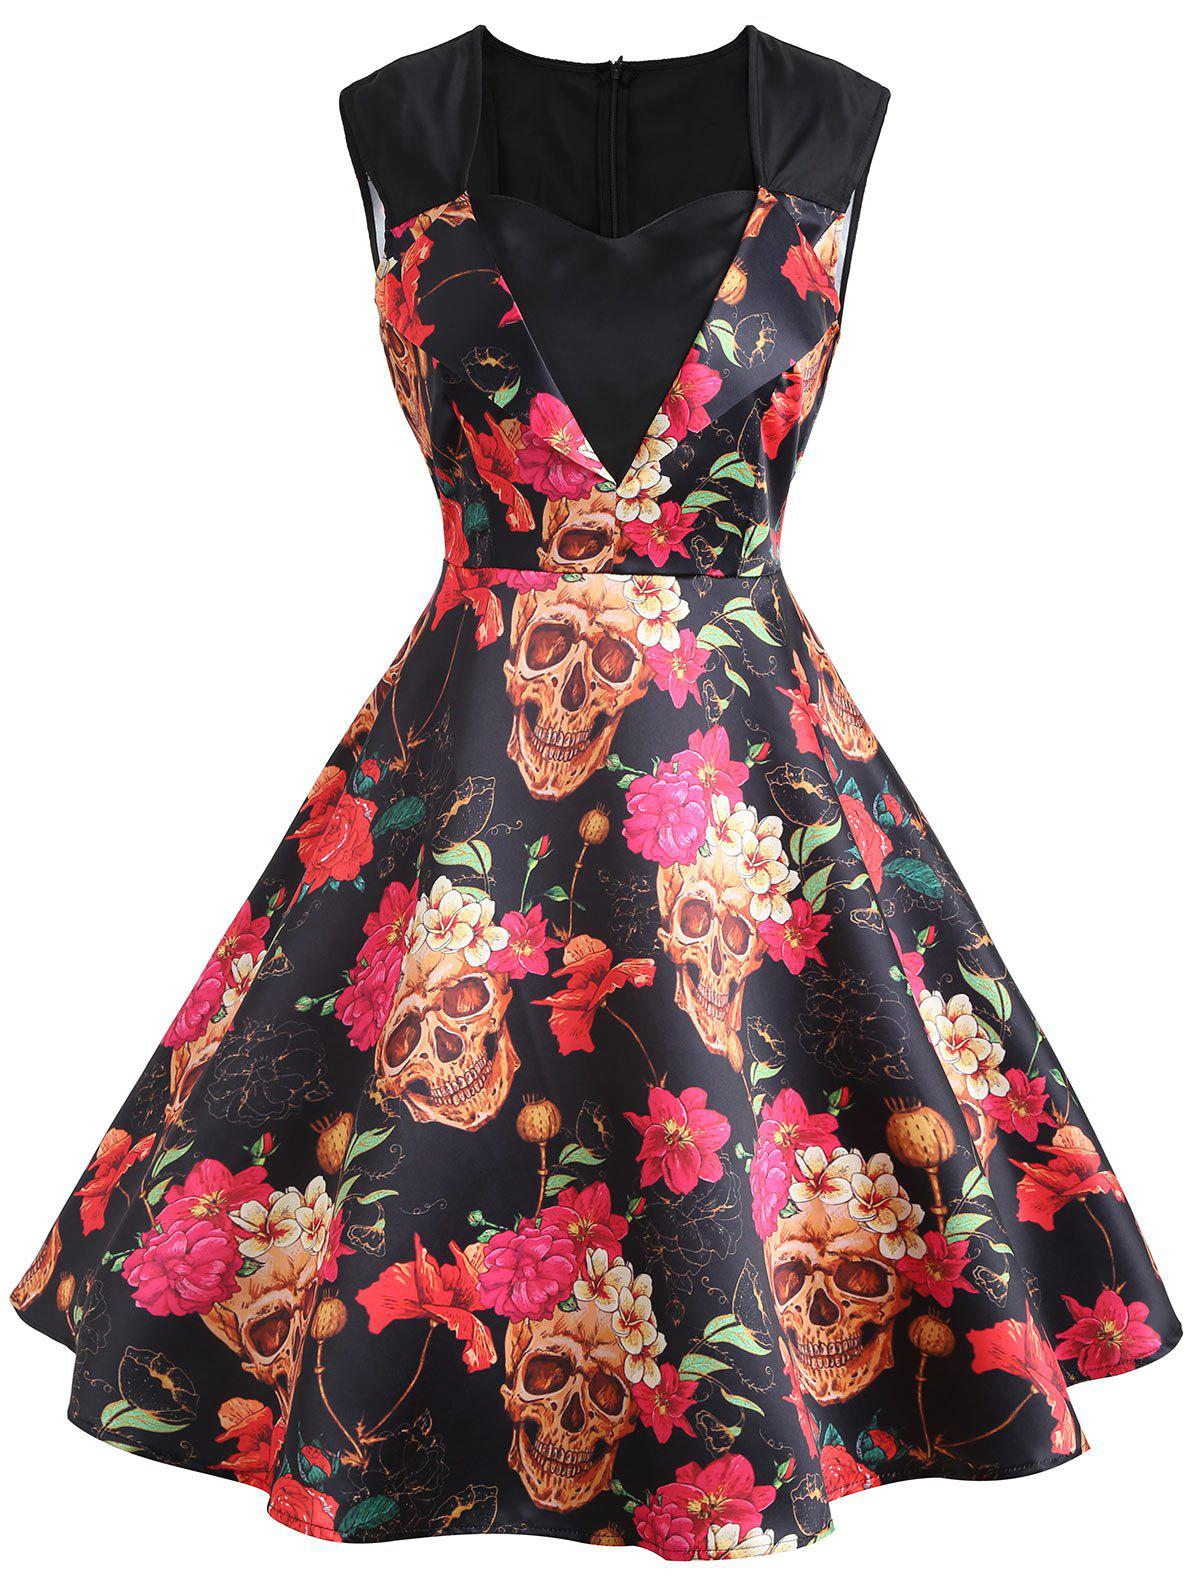 Floral Print A Line Sweetheart Vintage Dress - DEEP YELLOW S